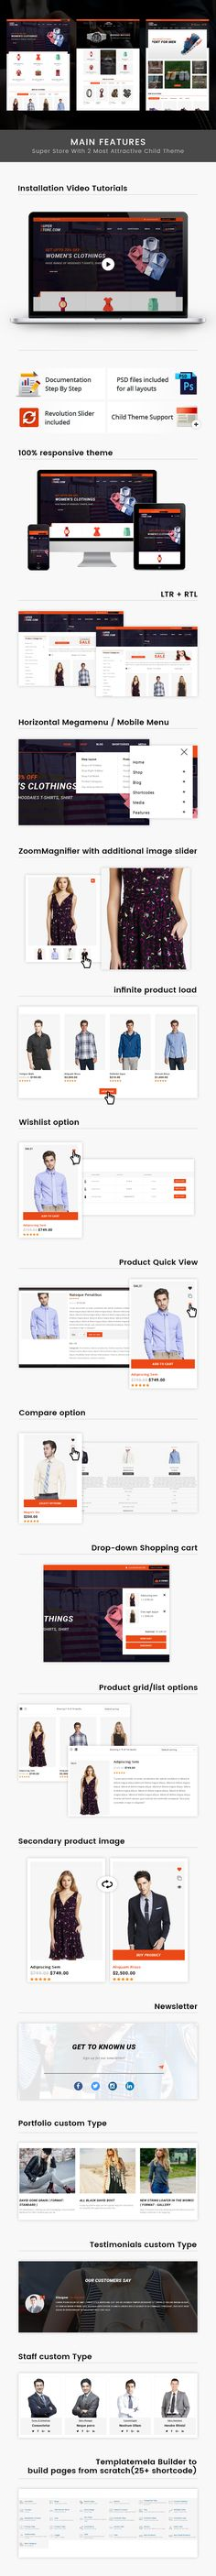 Super Store is WordPress ecommerce theme based on WooCommerce plugin. It is suitable for fashion, watches, shoes, sports, auto, jewelry and accessories store. It is also multipurpose theme which can be used for any kind of online store. Super Store WooCommerce theme is looking good with it's clean and fresh design. All sub pages are customized.